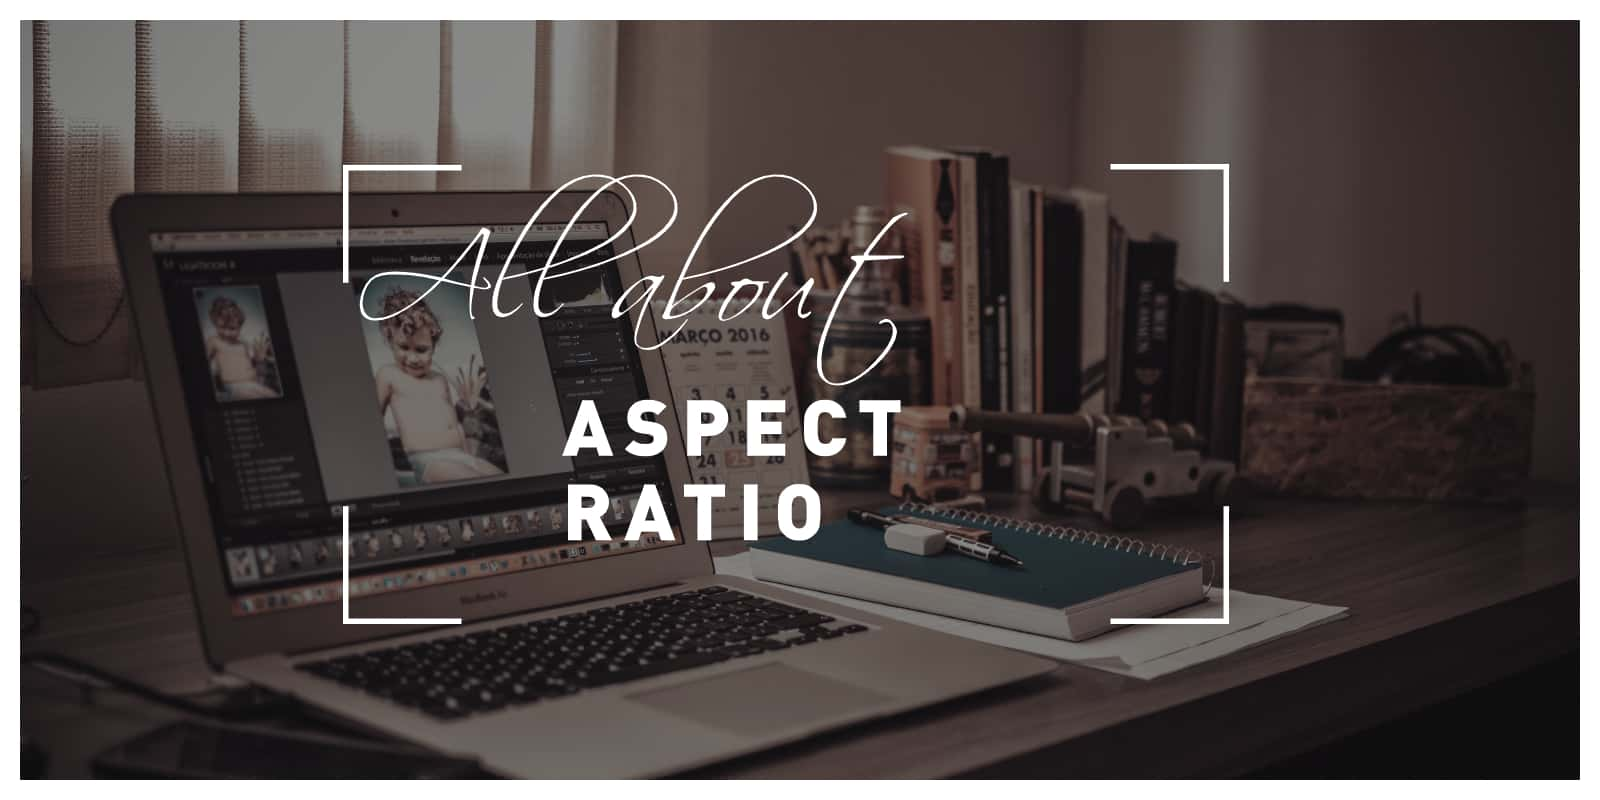 All about aspect ratio